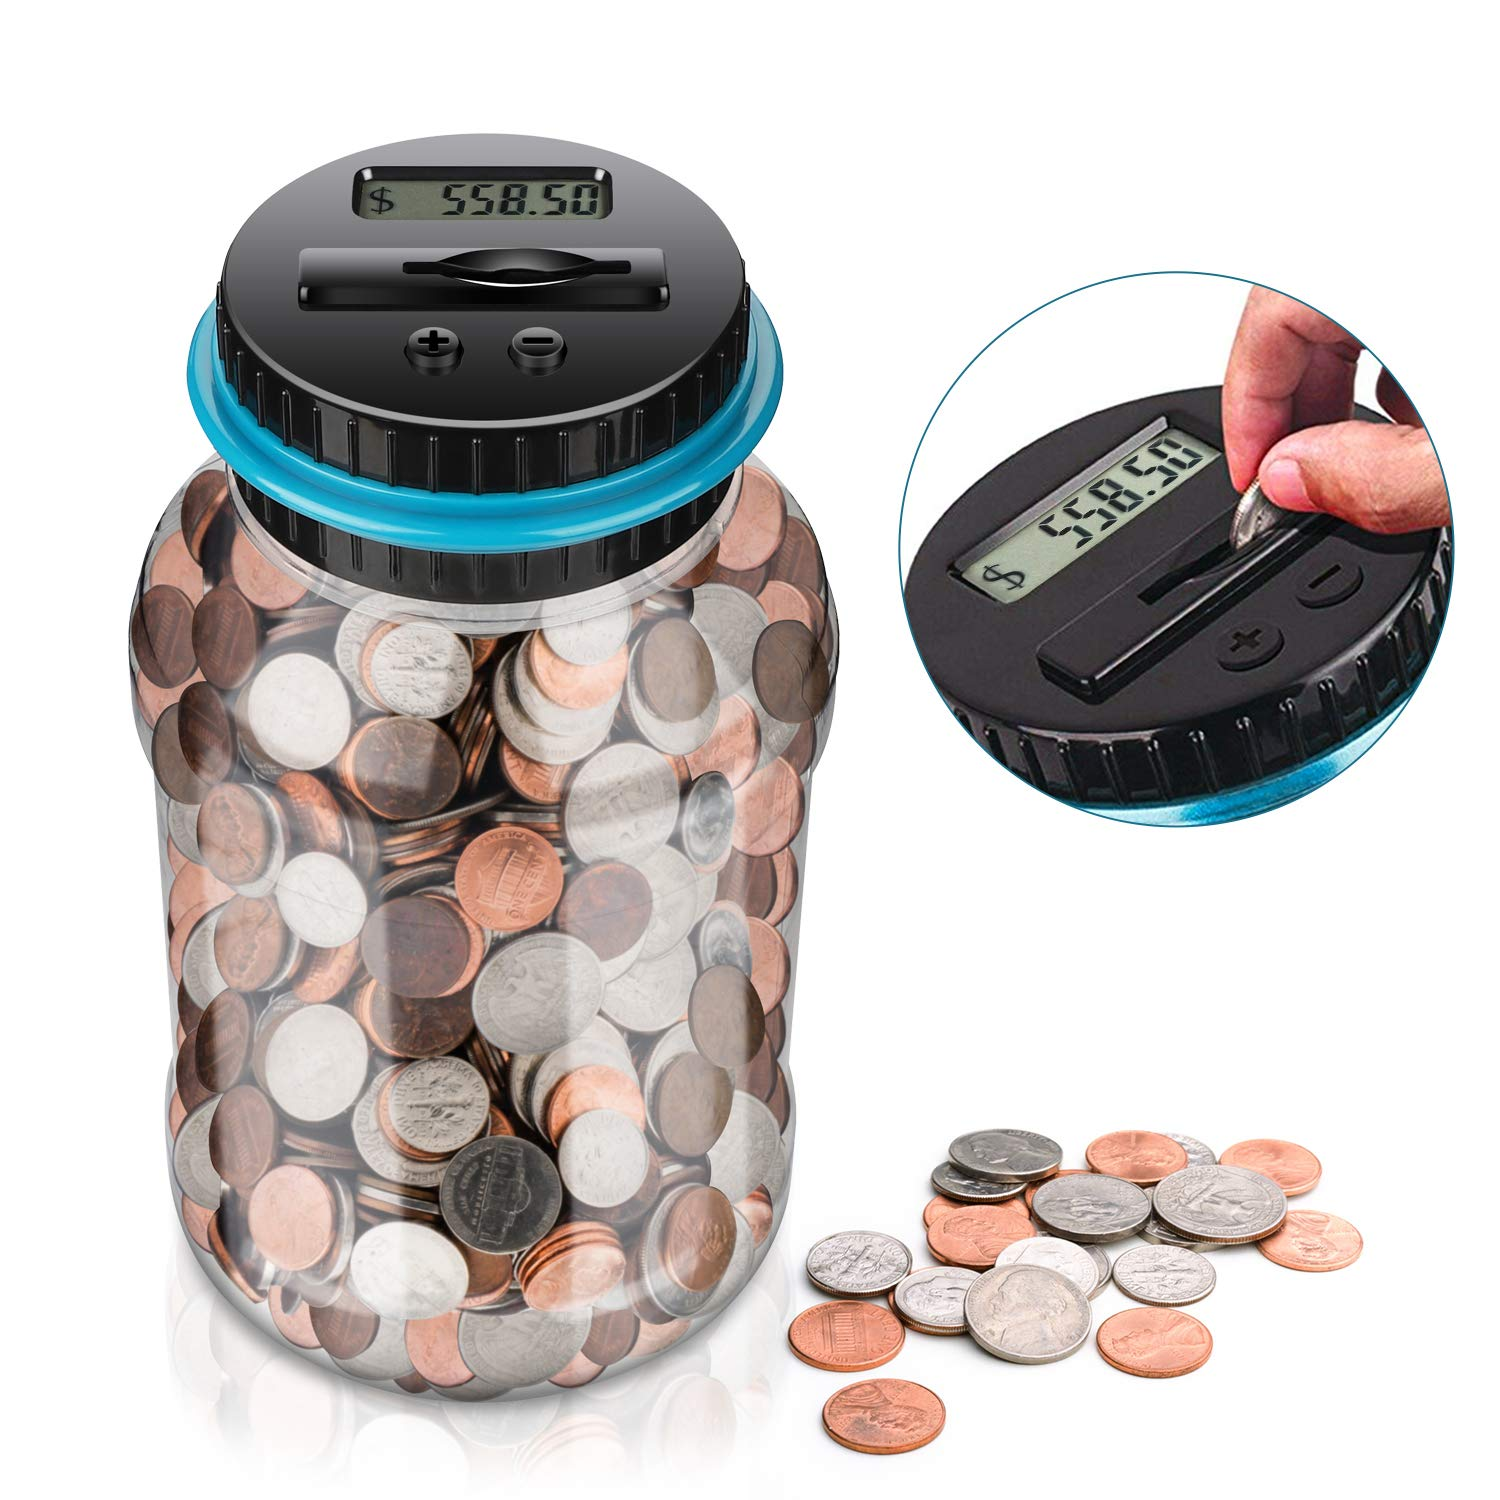 Piggy Bank,Amago Coin Bank ,Big Piggy Bank Digital Counting Coin Bank for Kids Adult Boy Girl as Gift,Powered by 2AAA Battery (Not Included) by Amago